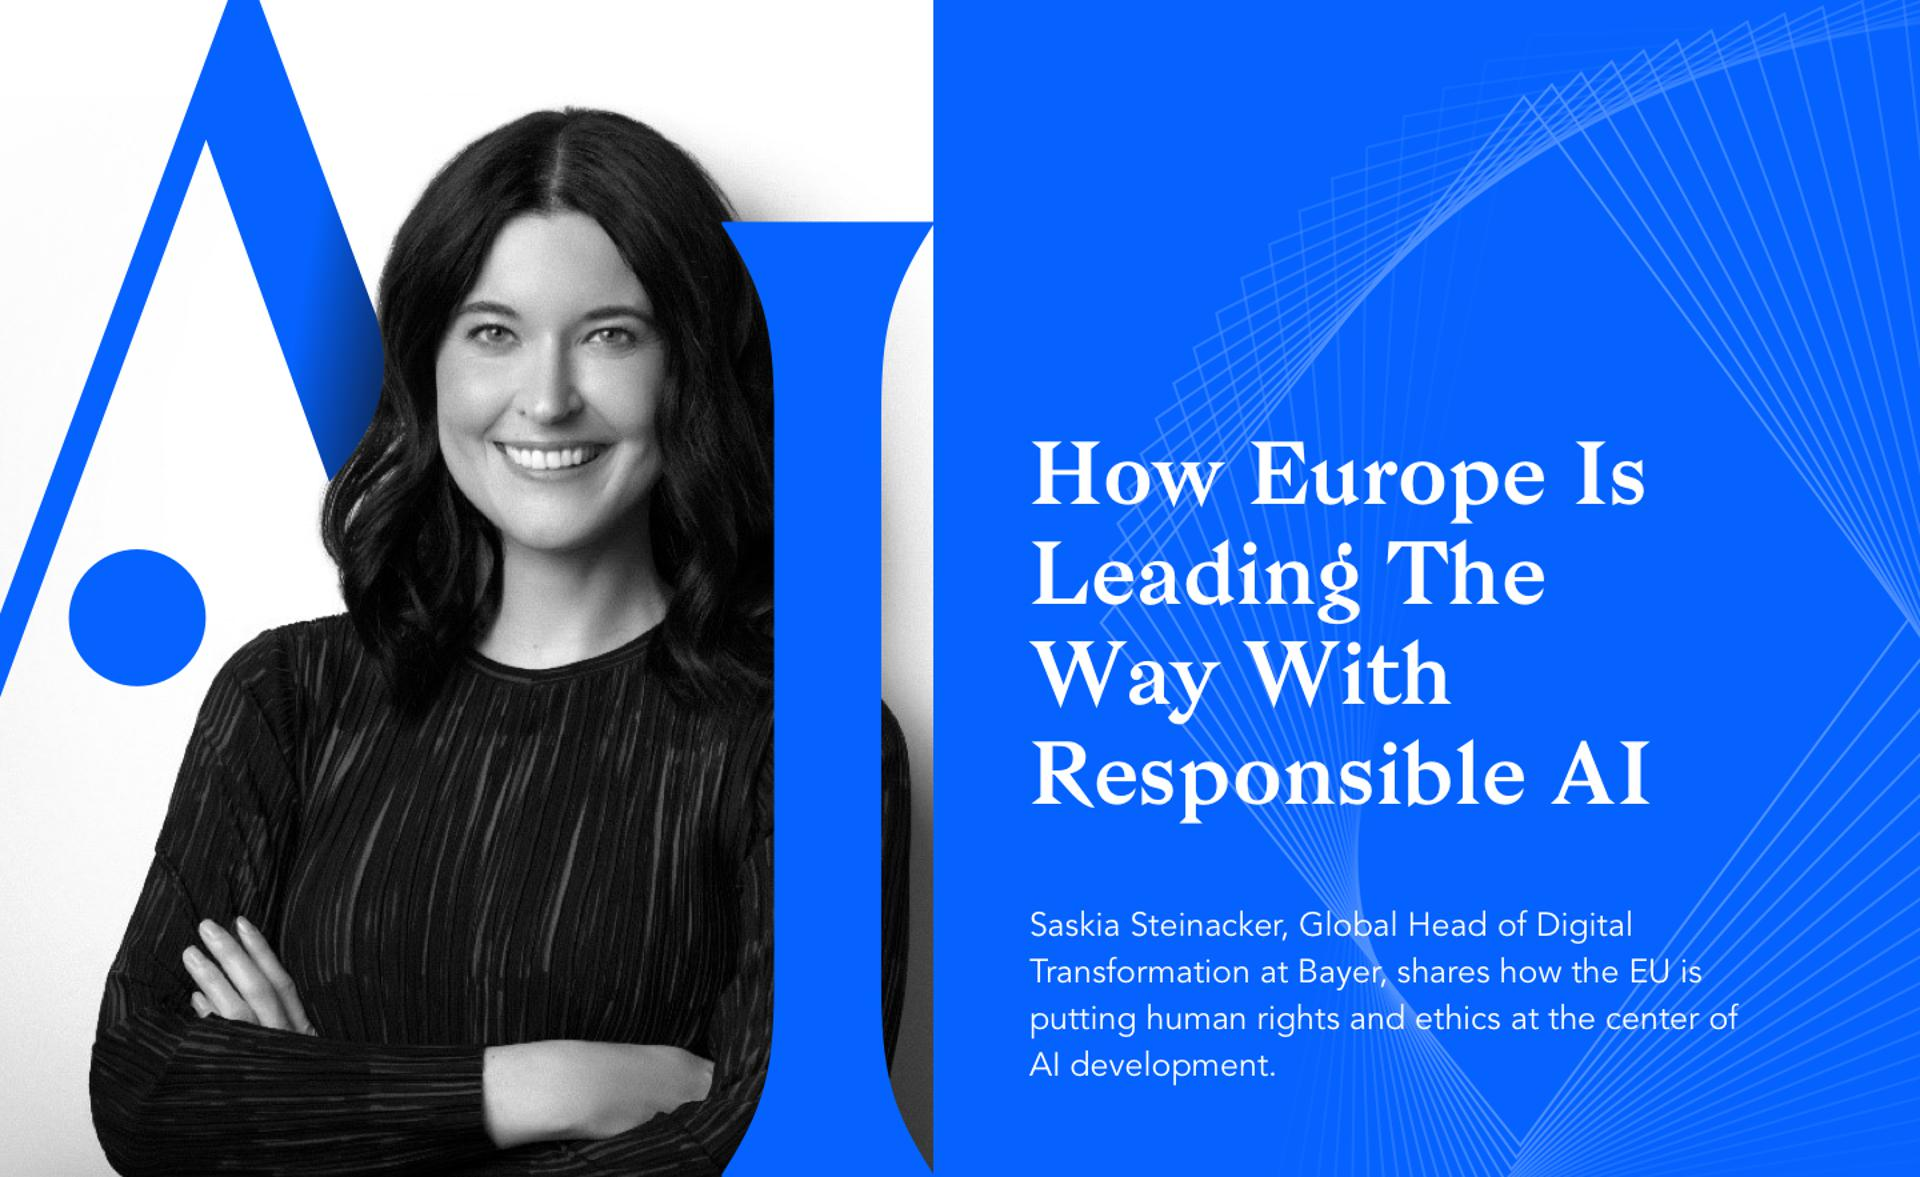 How Europe Is Leading The Way With Responsible AI